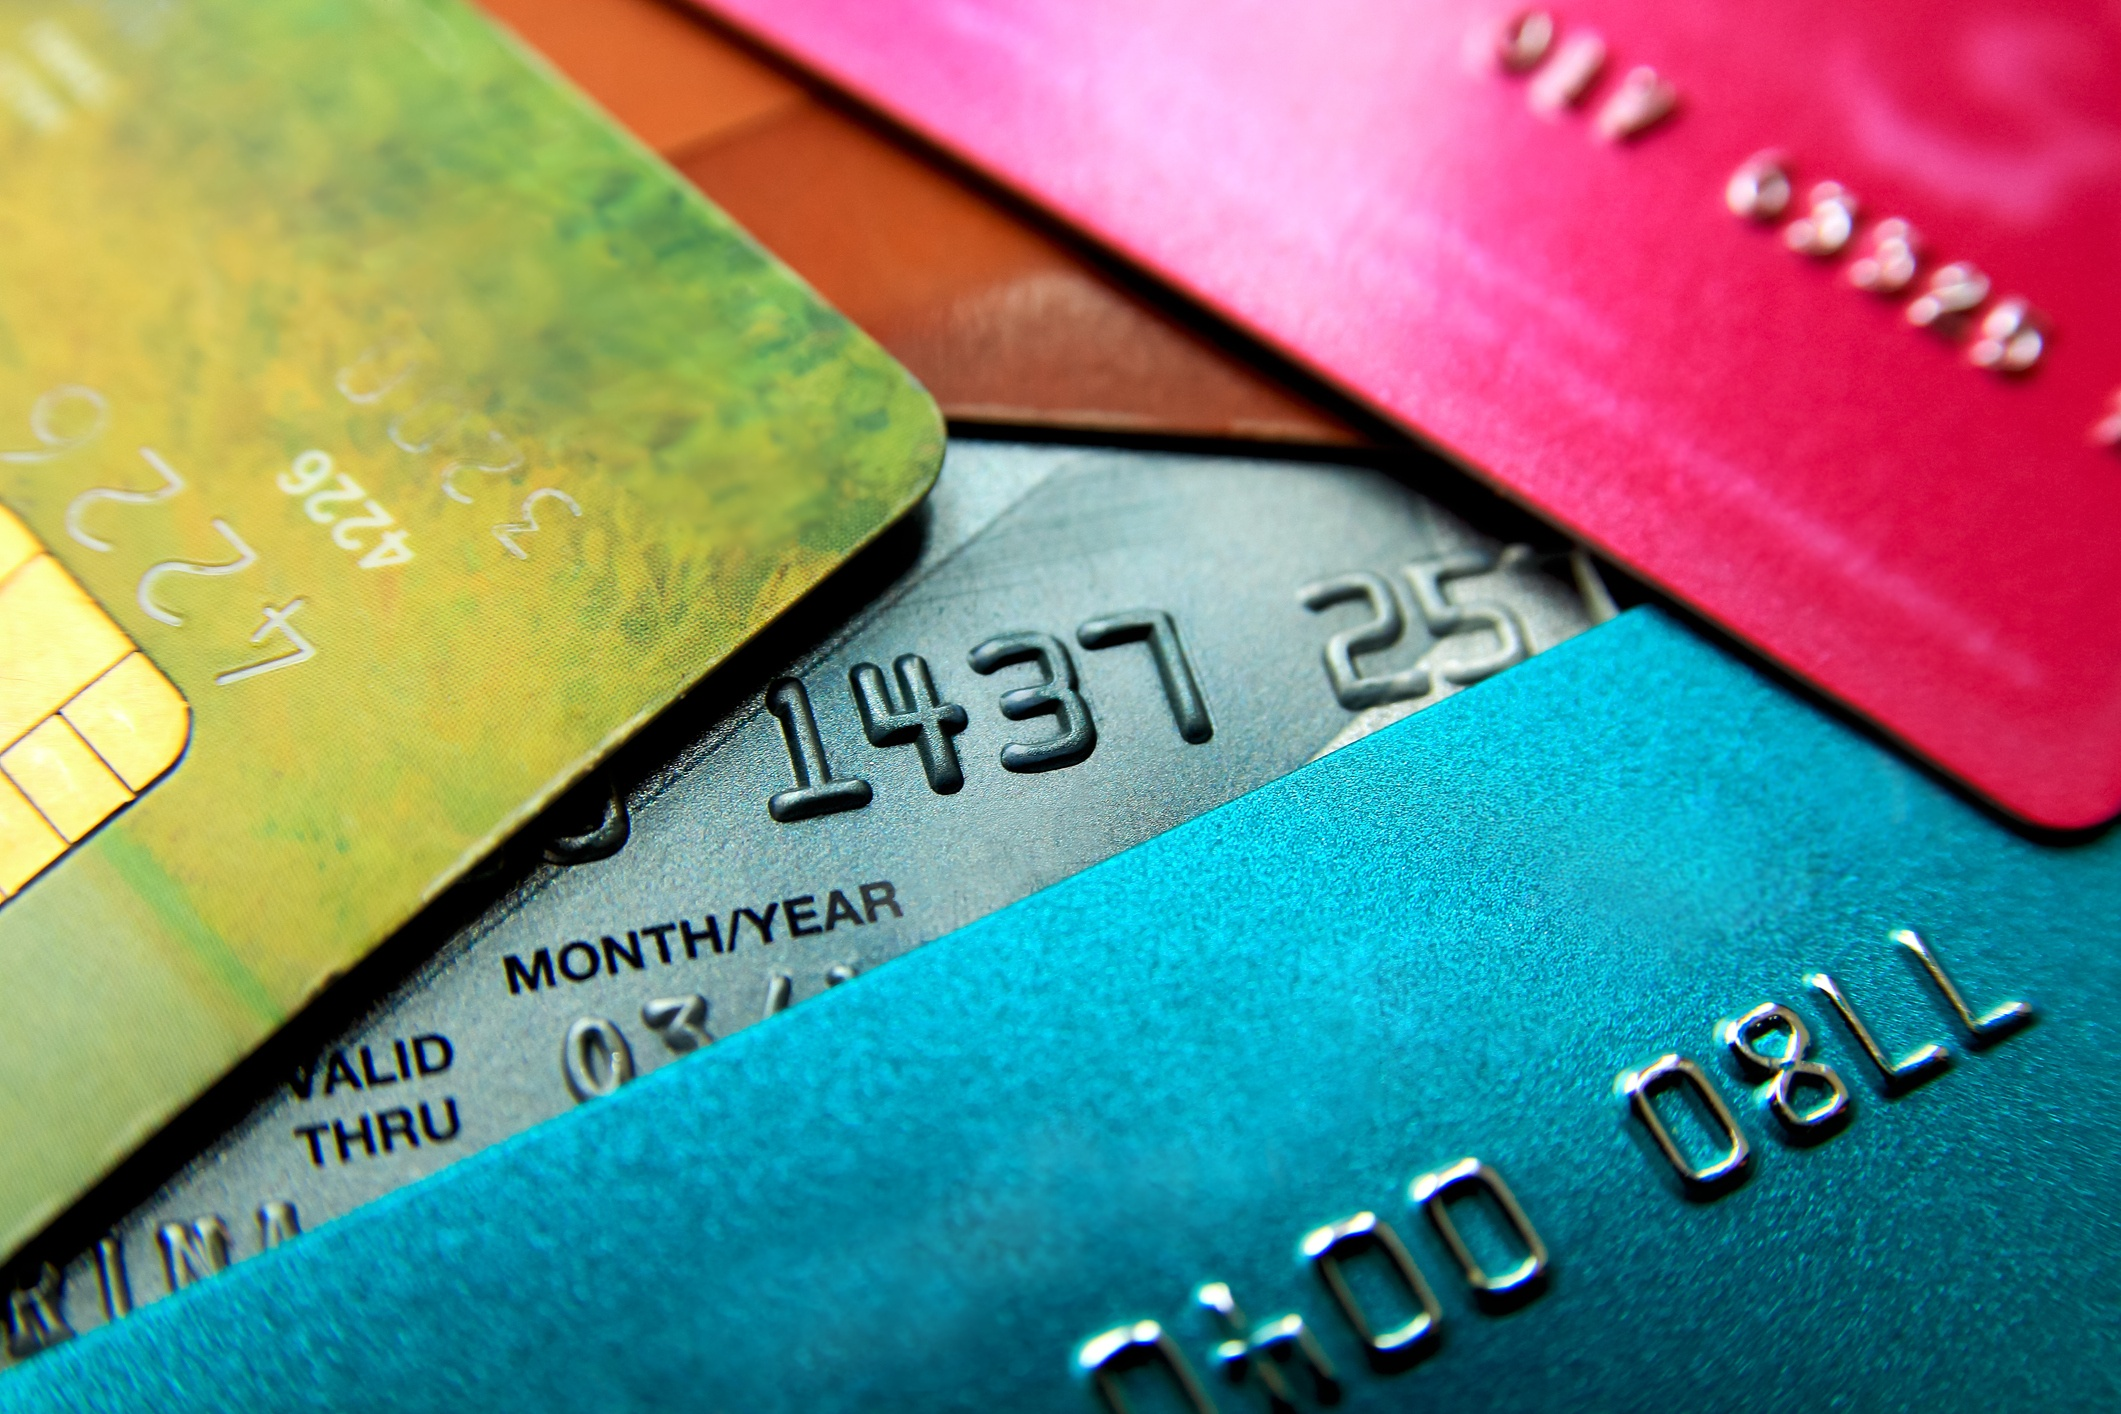 Pile of credit cards in multiple colors